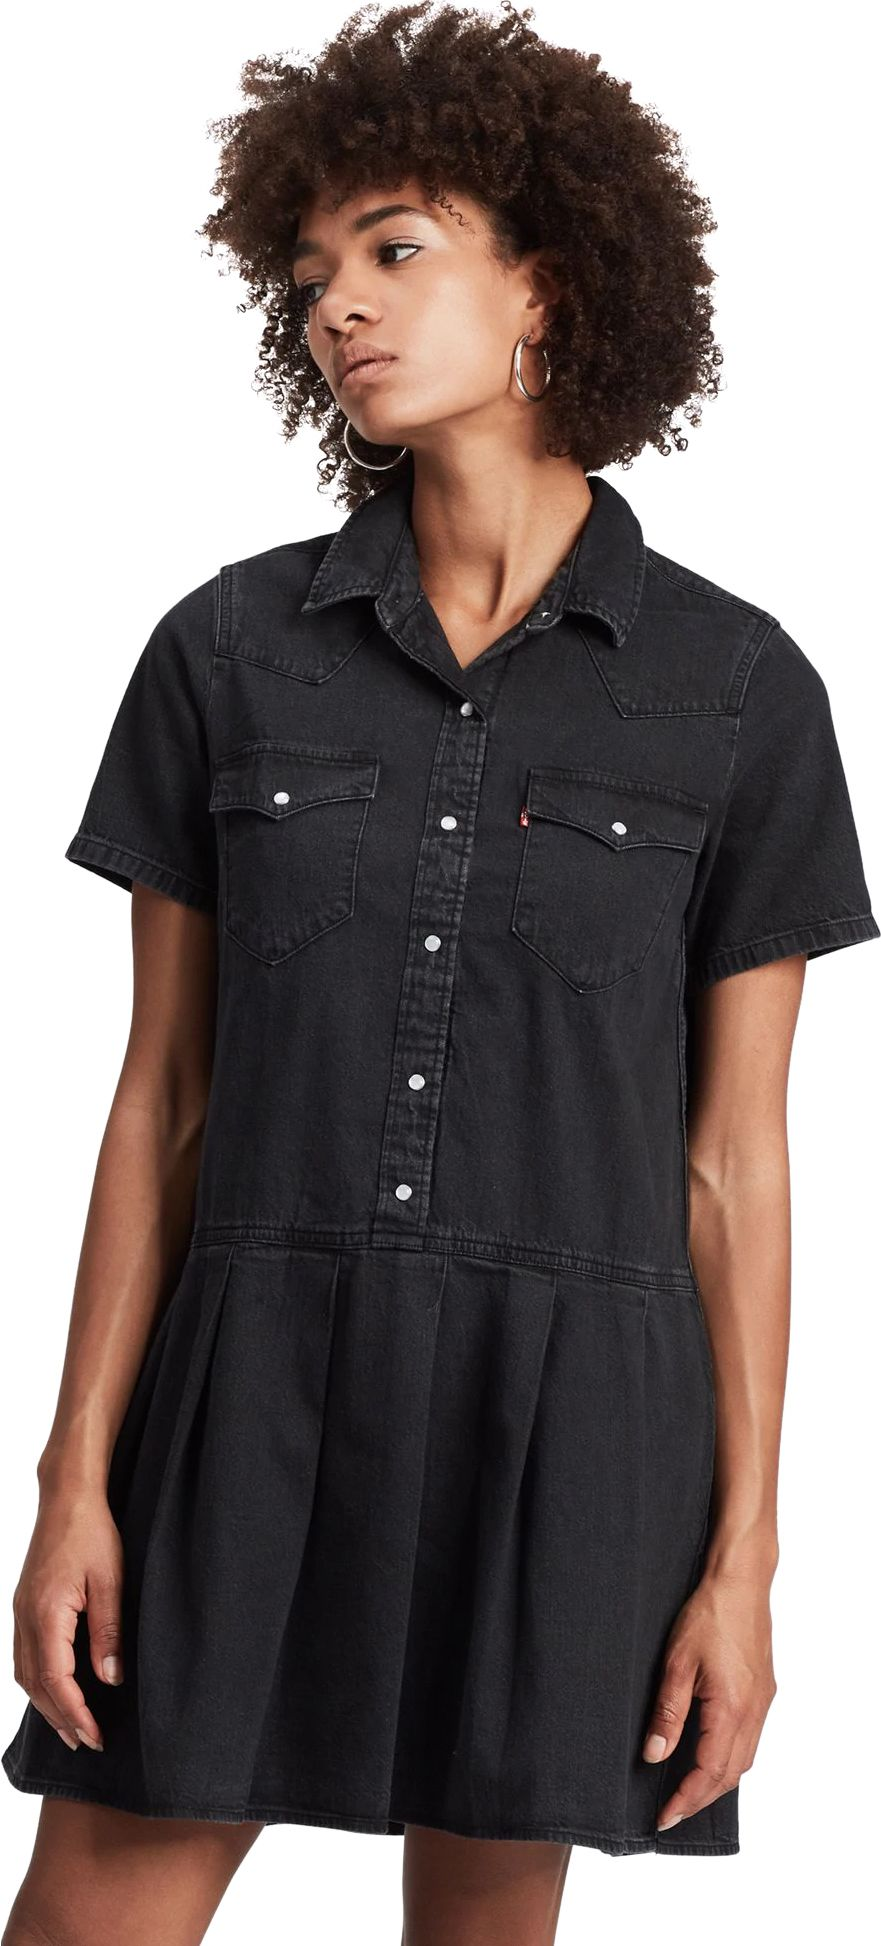 Levi's Mirai Western Denim Dress Black